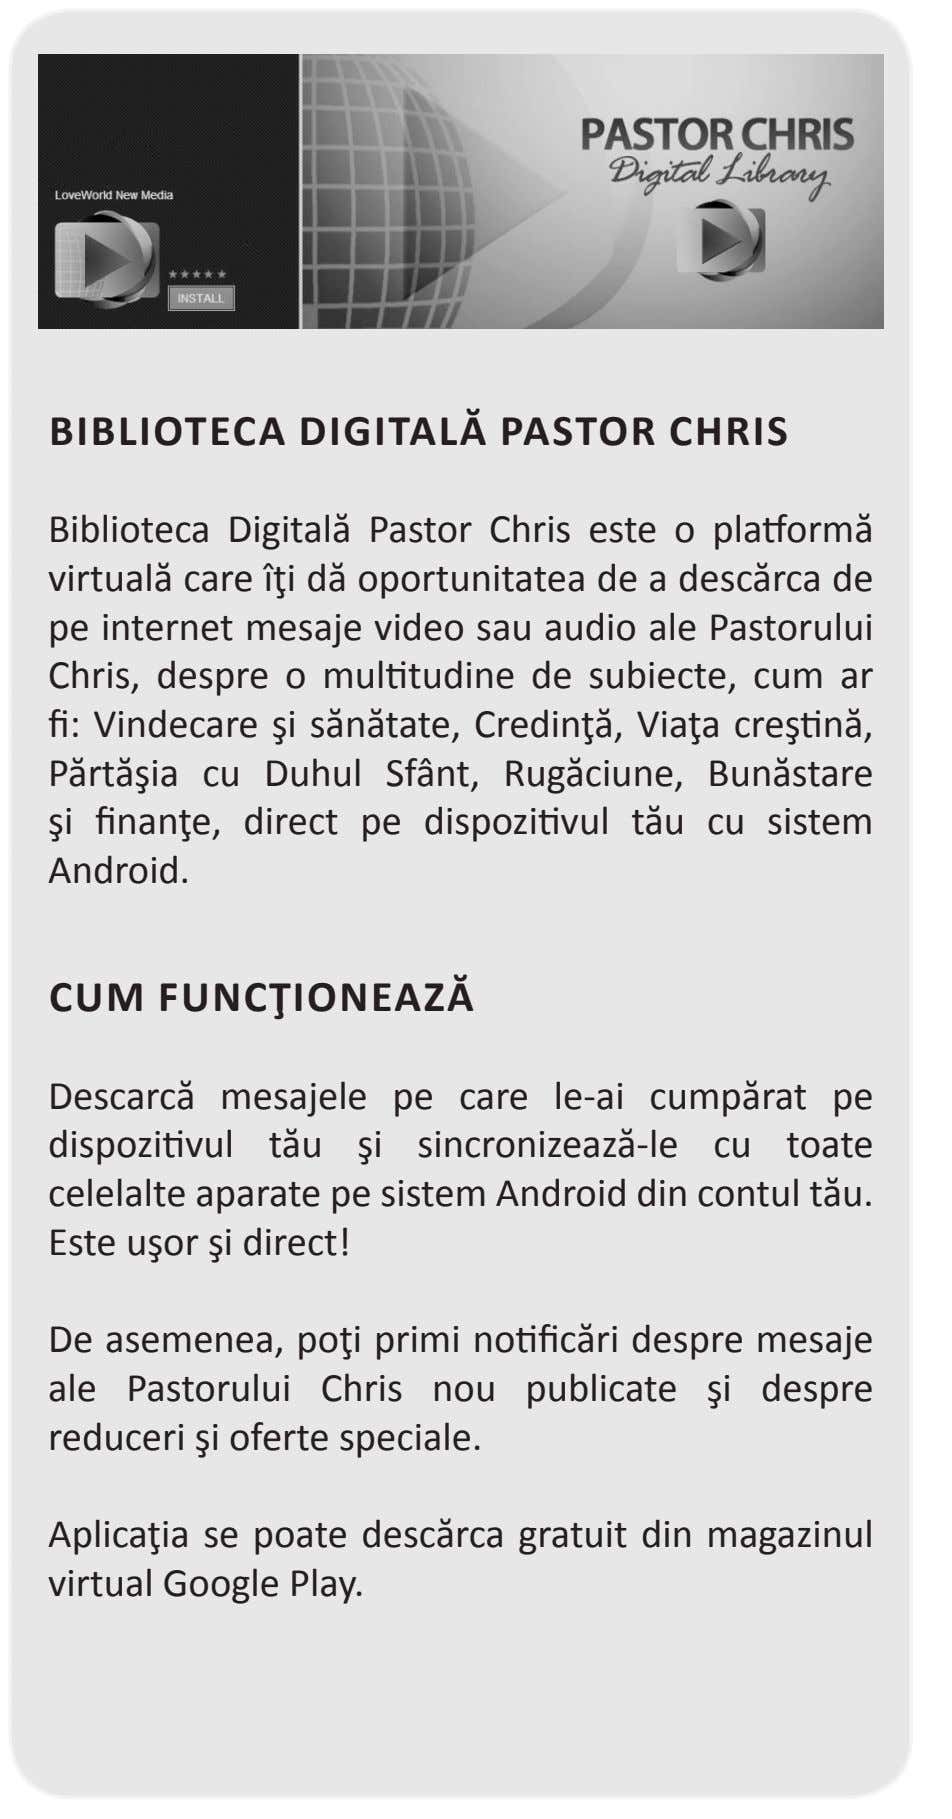 BIBLIOTECA DIGITALĂ PASTOR CHRIS Biblioteca Digitală Pastor Chris este o platformă virtuală care îţi dă